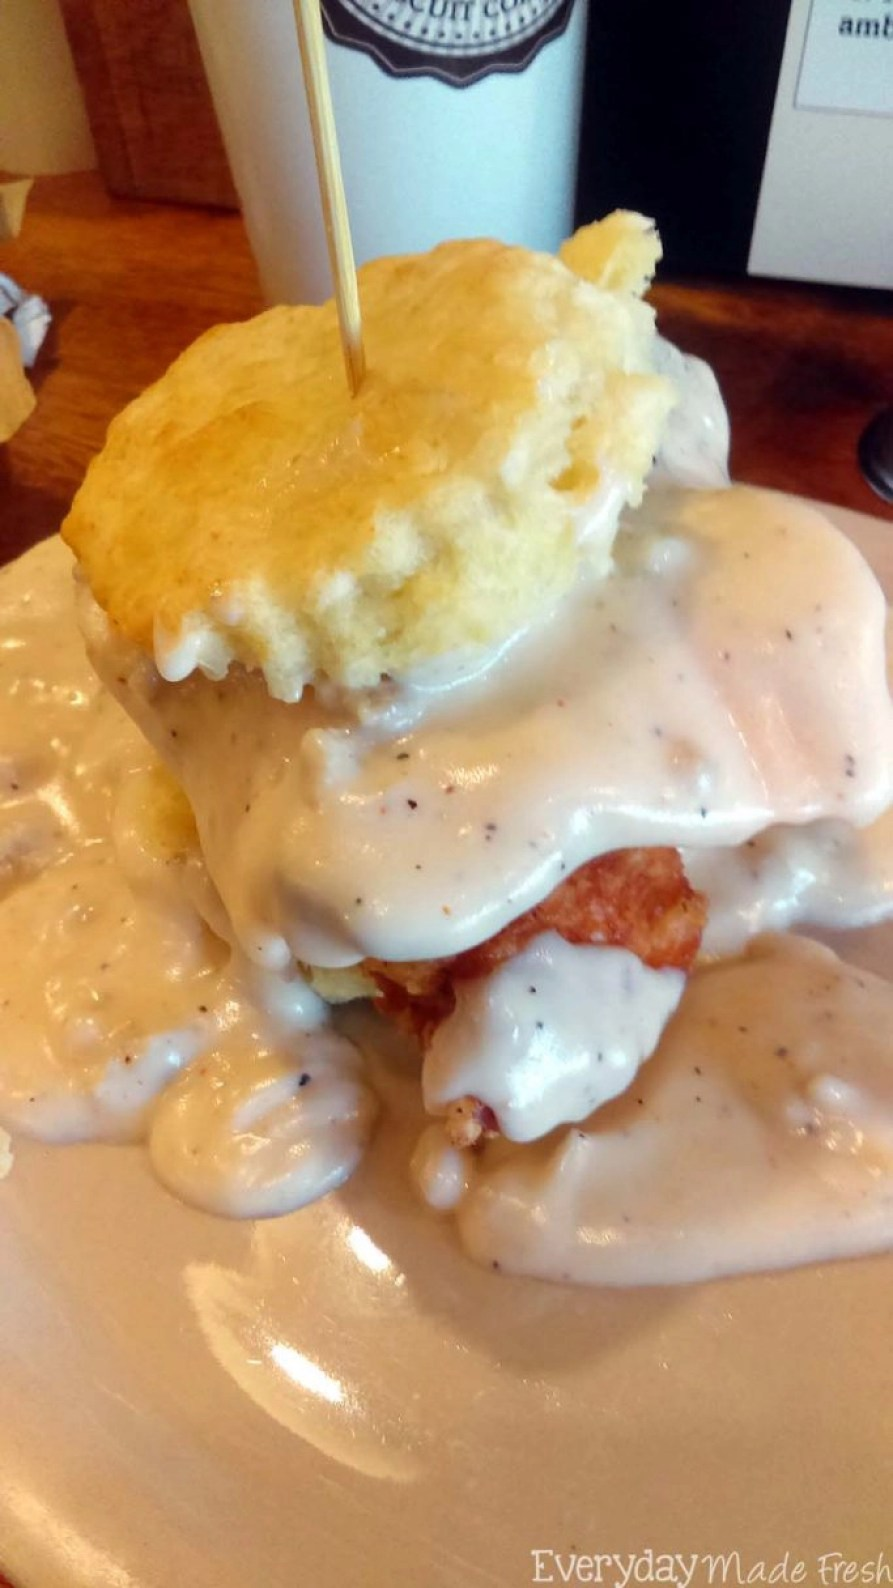 If you're visiting the area and will be Dining Out in Jacksonville FL, Don't Miss Maple Street Biscuit Company! They have the best breakfast/brunch around! | EverydayMadeFresh.com